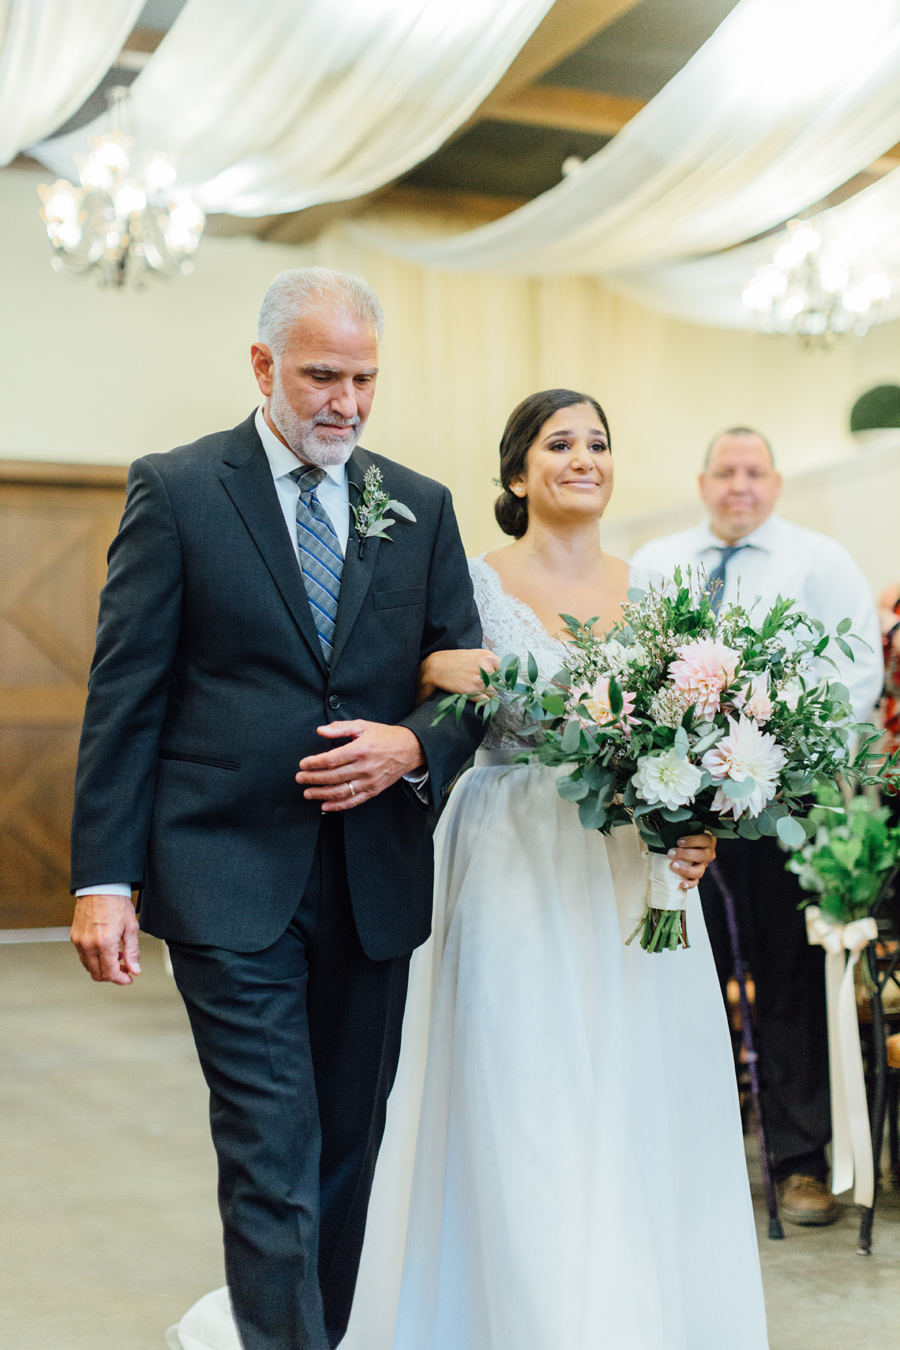 the-inn-at-leola-wedding-lancaster-pennsylvania-wedding-photographer-rebeka-viola-photograhy (55).jpg